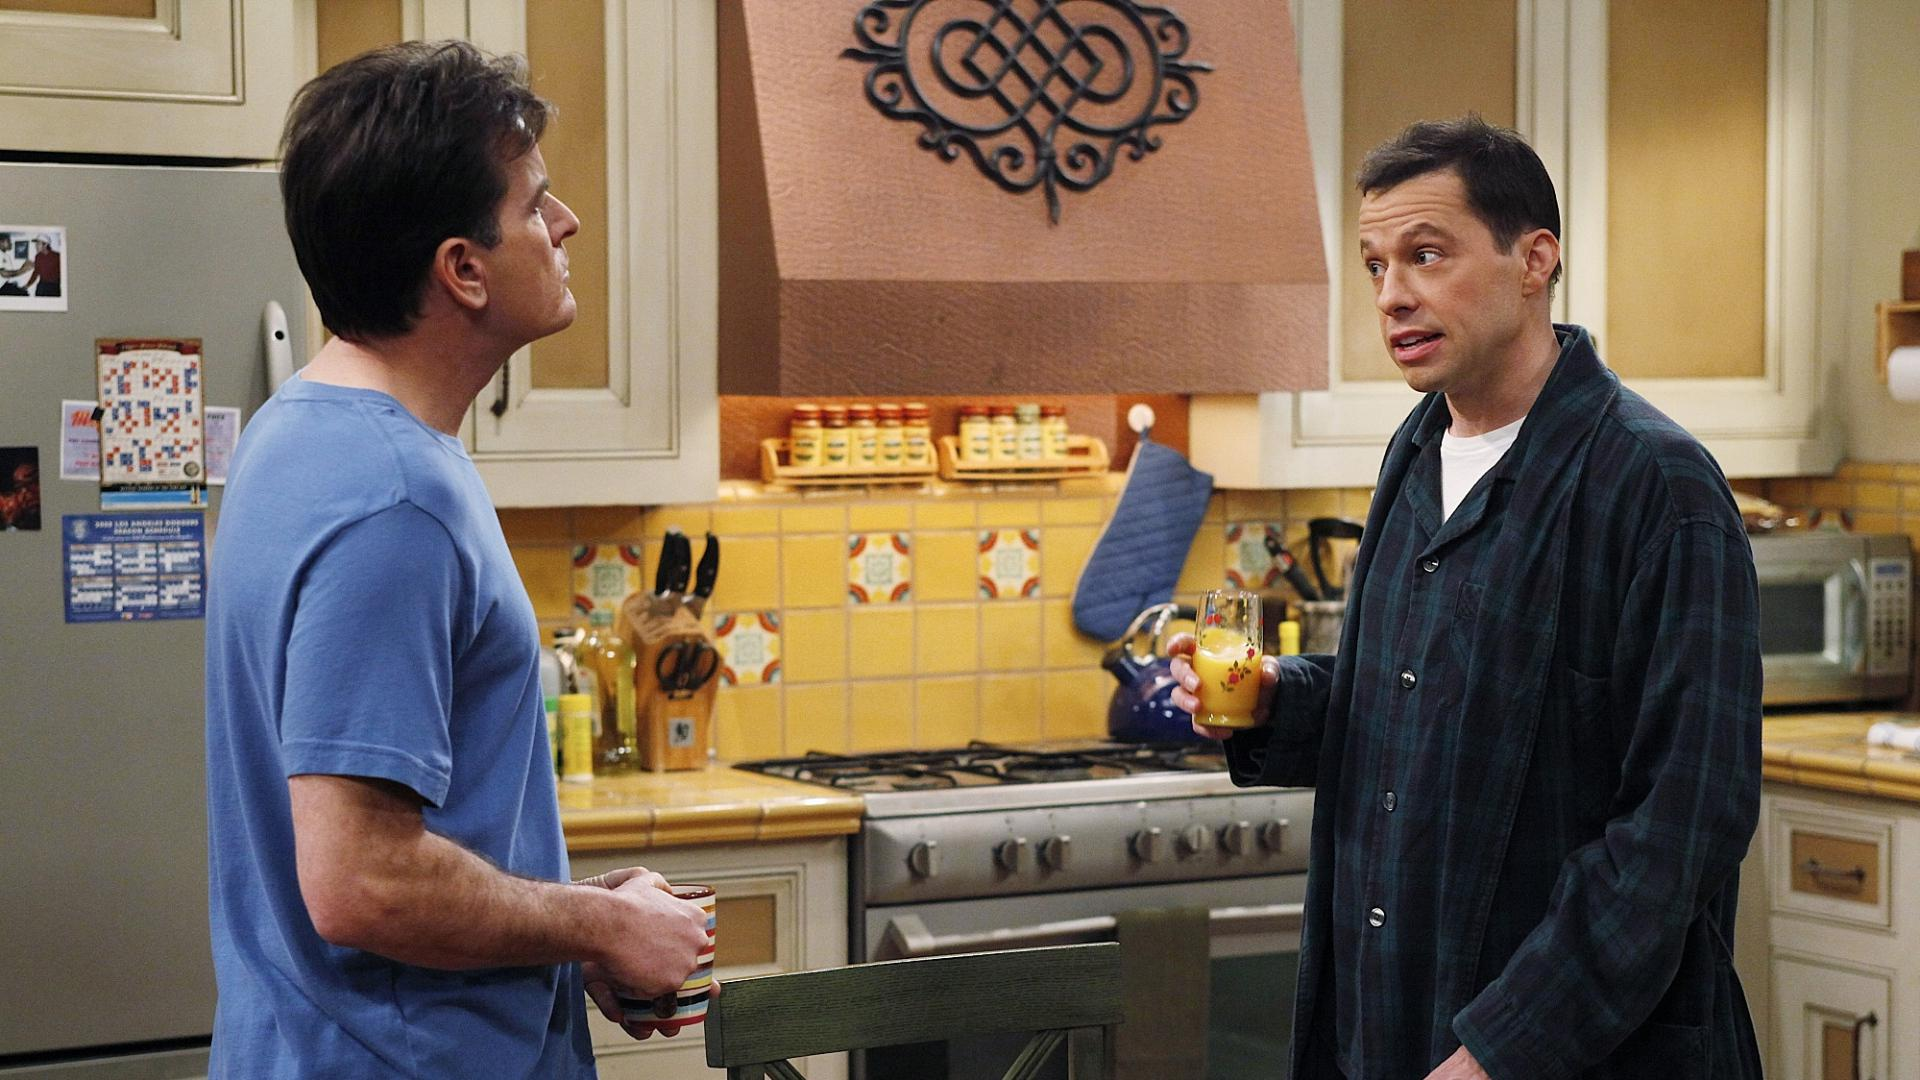 hd hintergrundbilder jon cryer charlie sheen two and a half men jake harper charlie harper konflikt küche 1920x1080